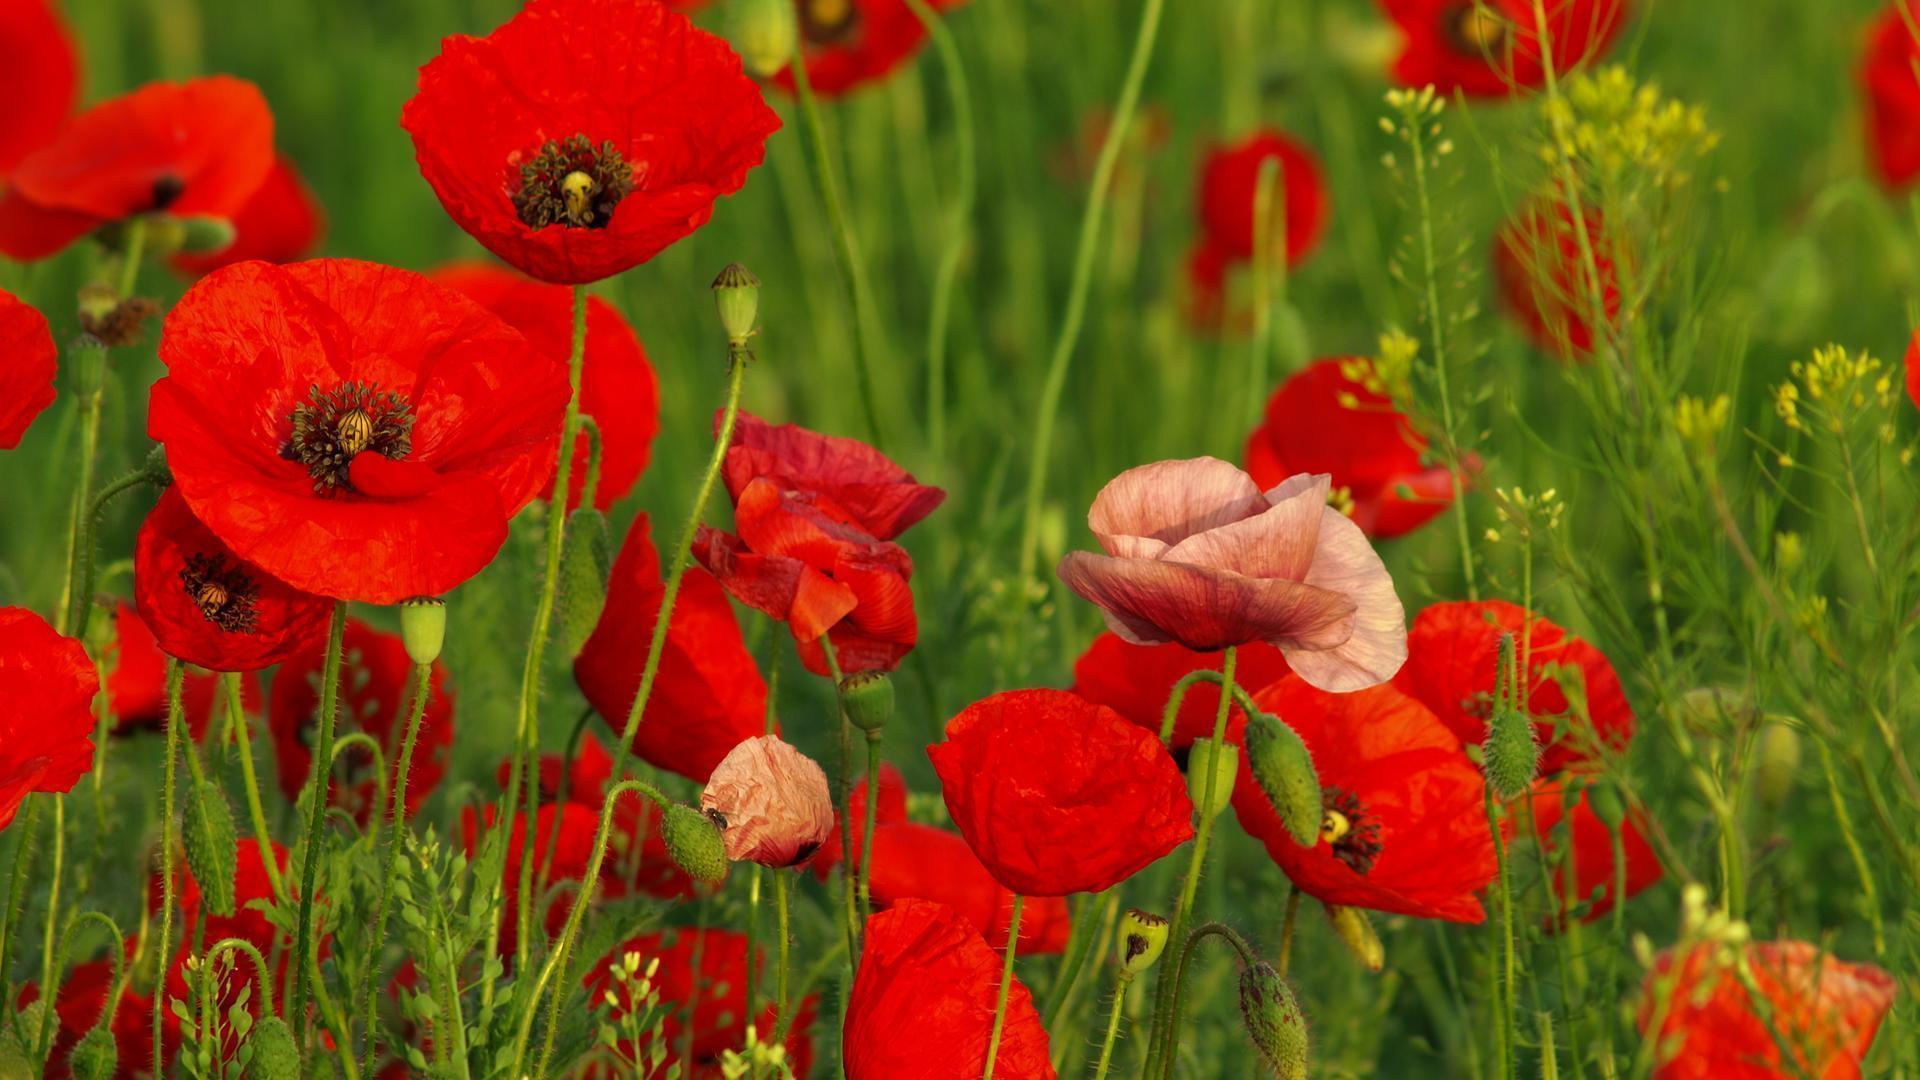 poppies wallpapers 22 hd - photo #26